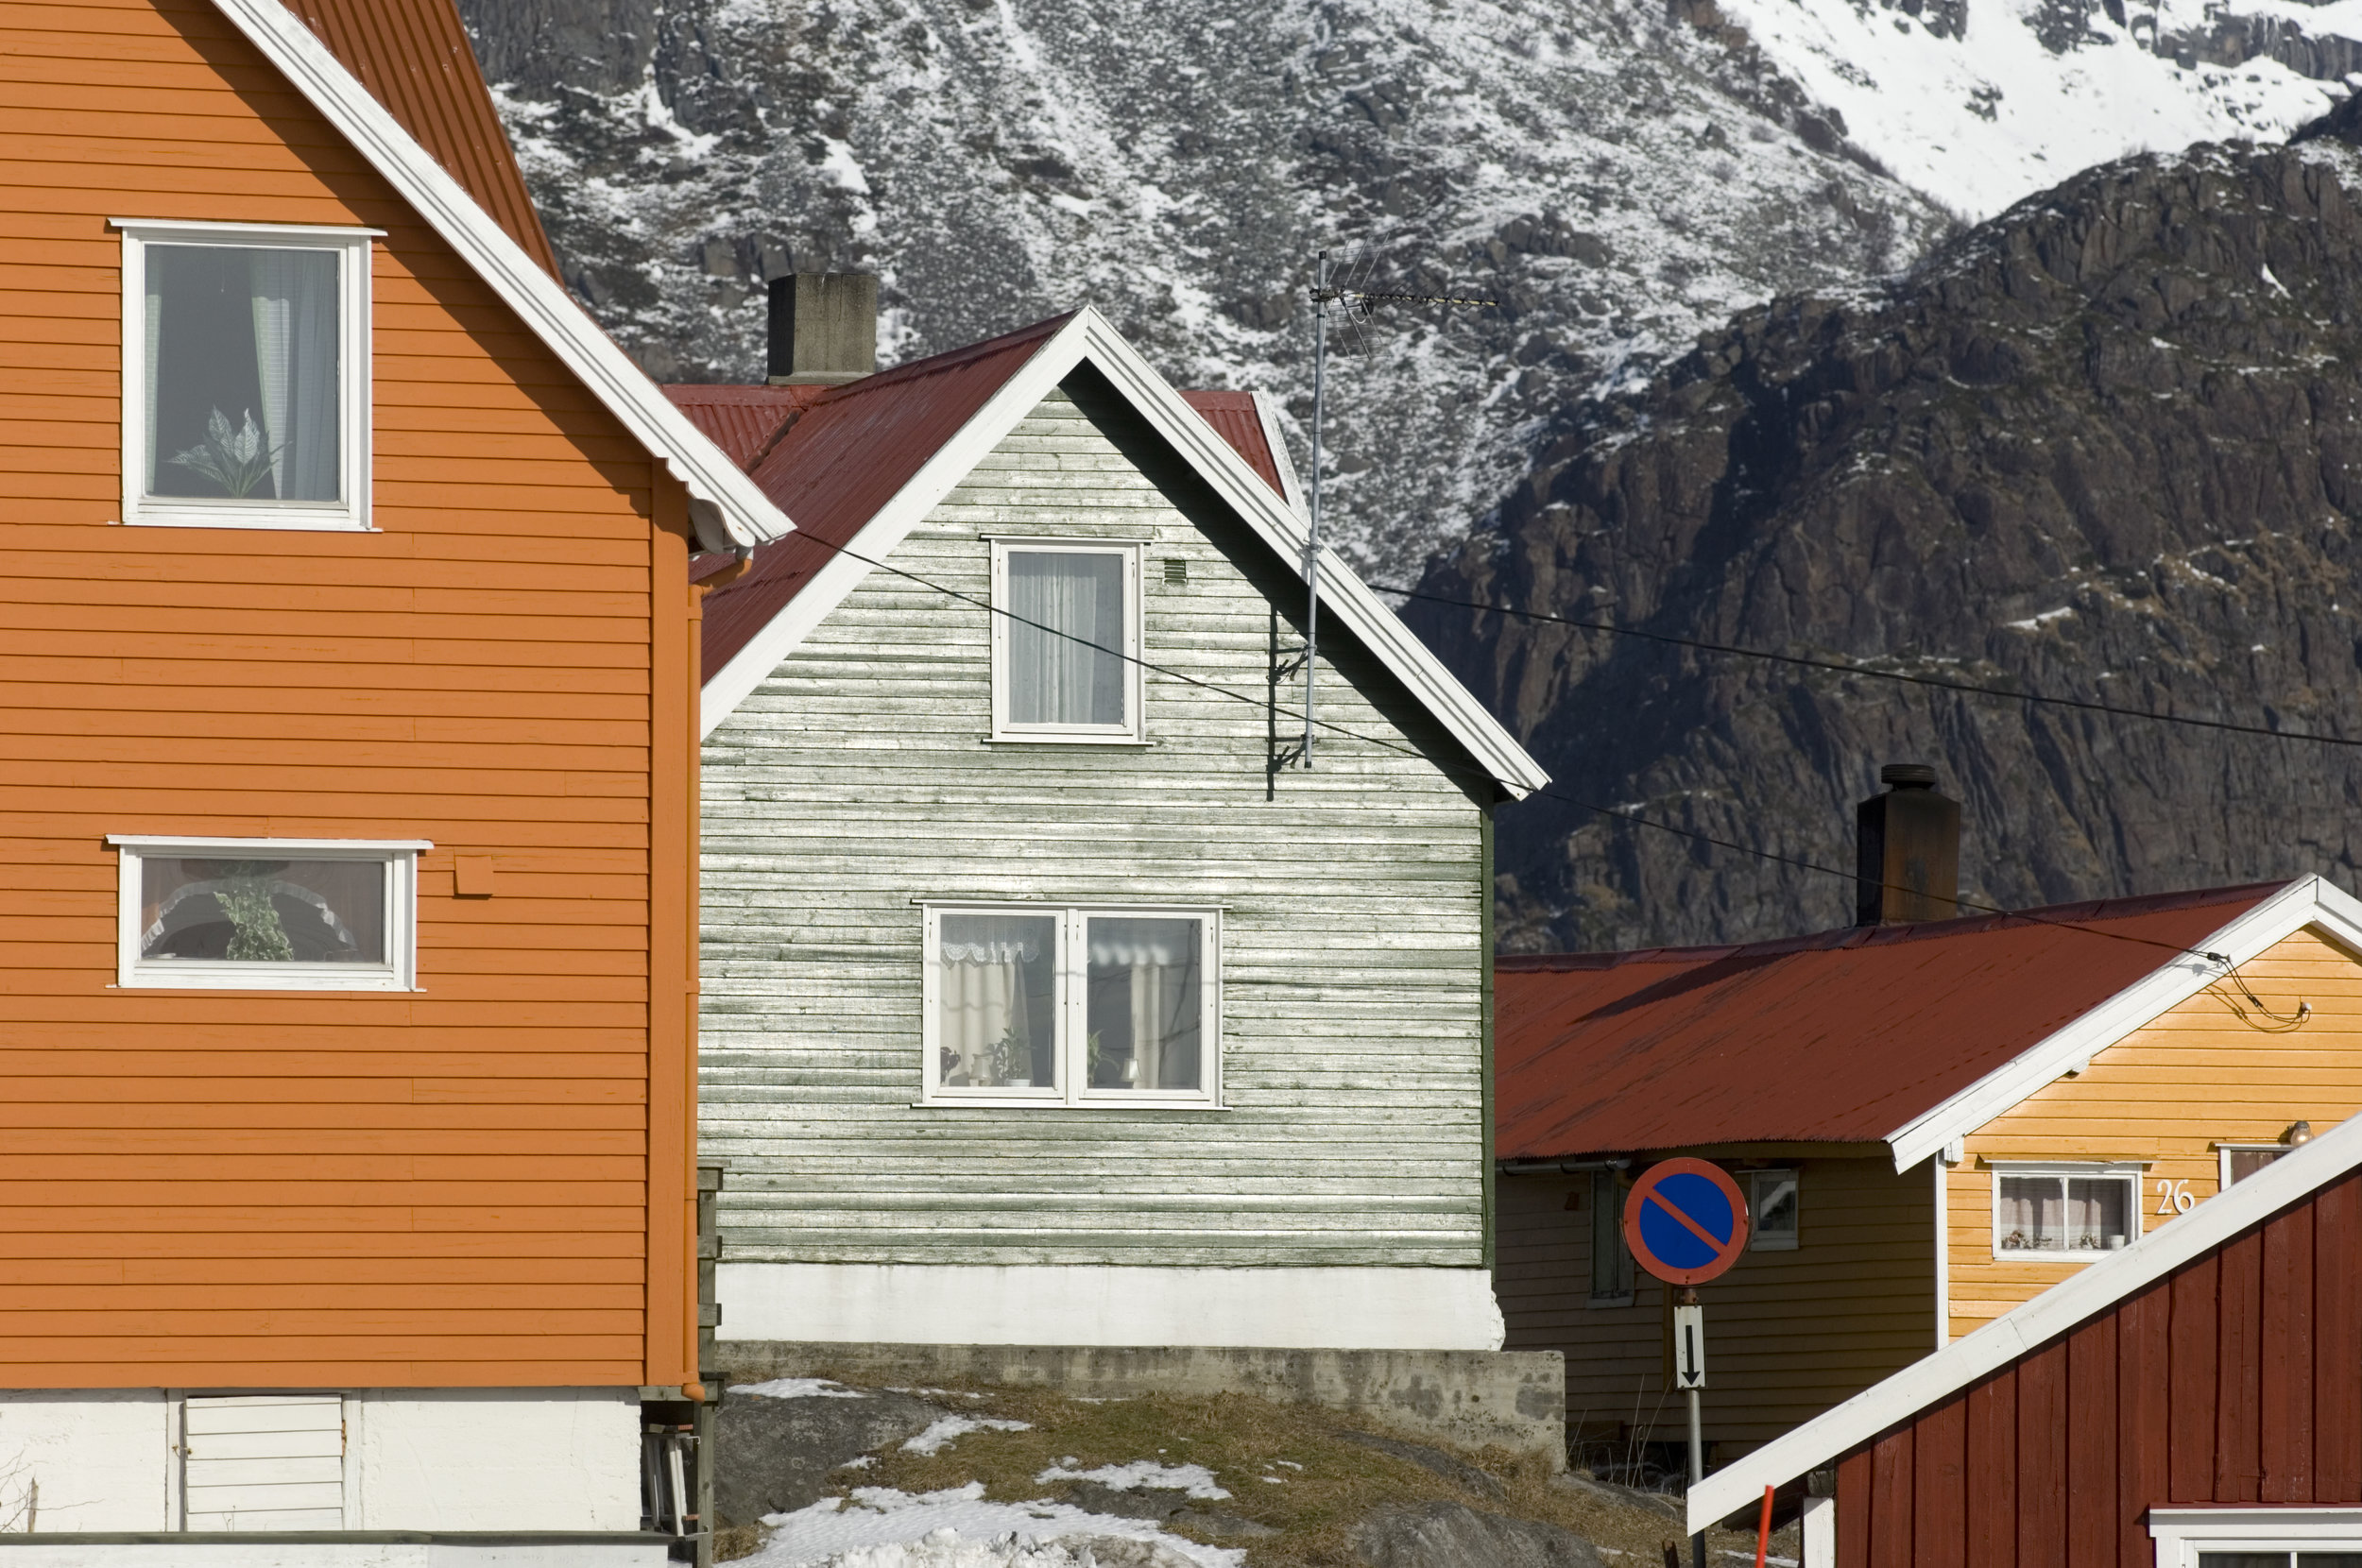 Evy Jansen (60 years old), Stamsund - Evy is an incomer to Lofoten and has been driving buses in this island paradise since 2000. Over the years, she has acquired knowledge that would be the envy of any tour guide, and she is happy to share her top tips on how to spend time in Lofoten.